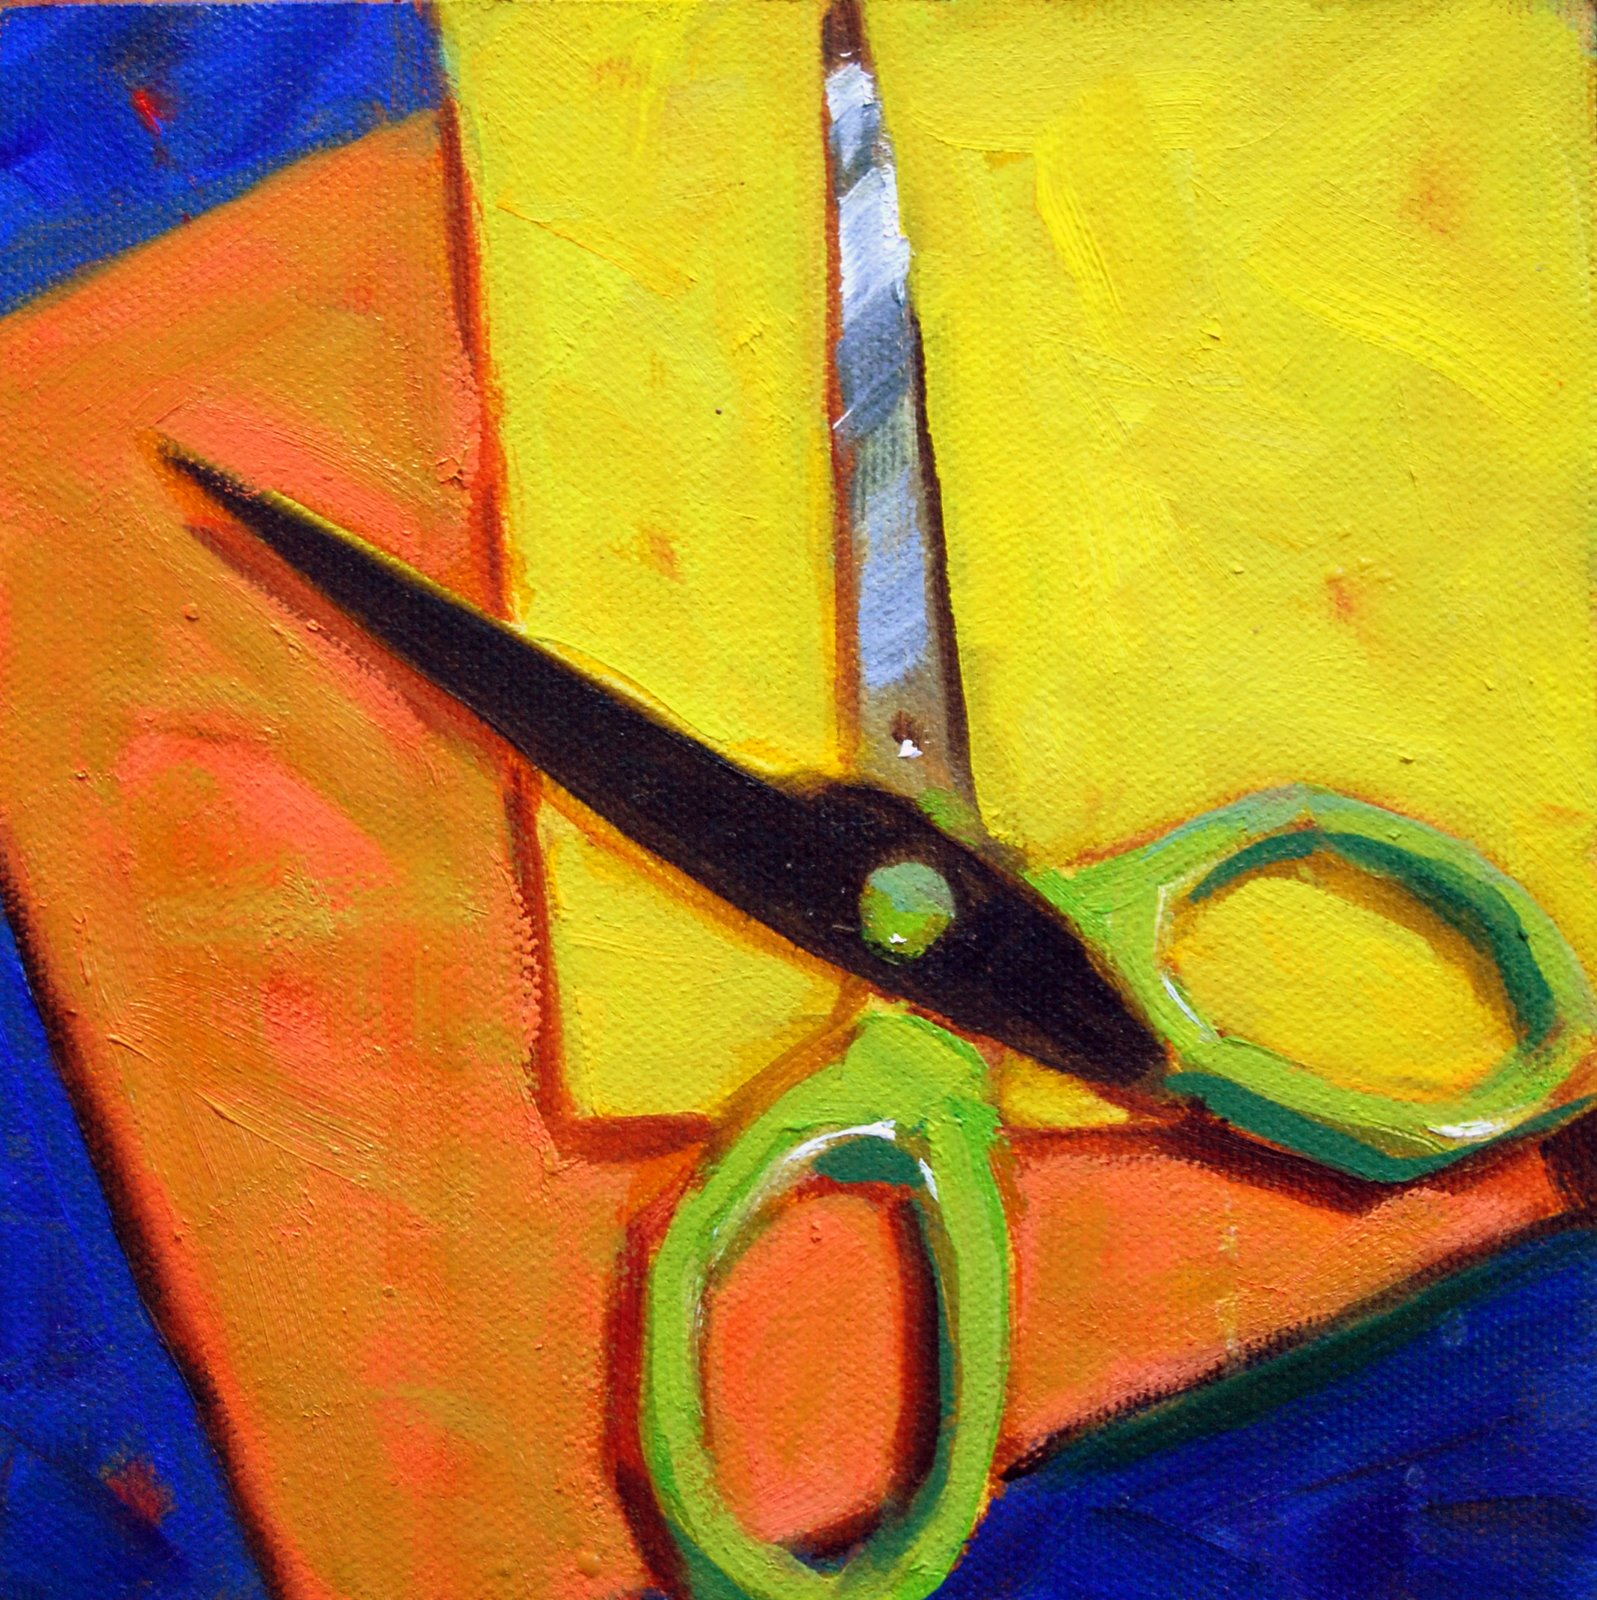 Scissors - With Carol Marine's Influence original fine art by Julie Ford Oliver